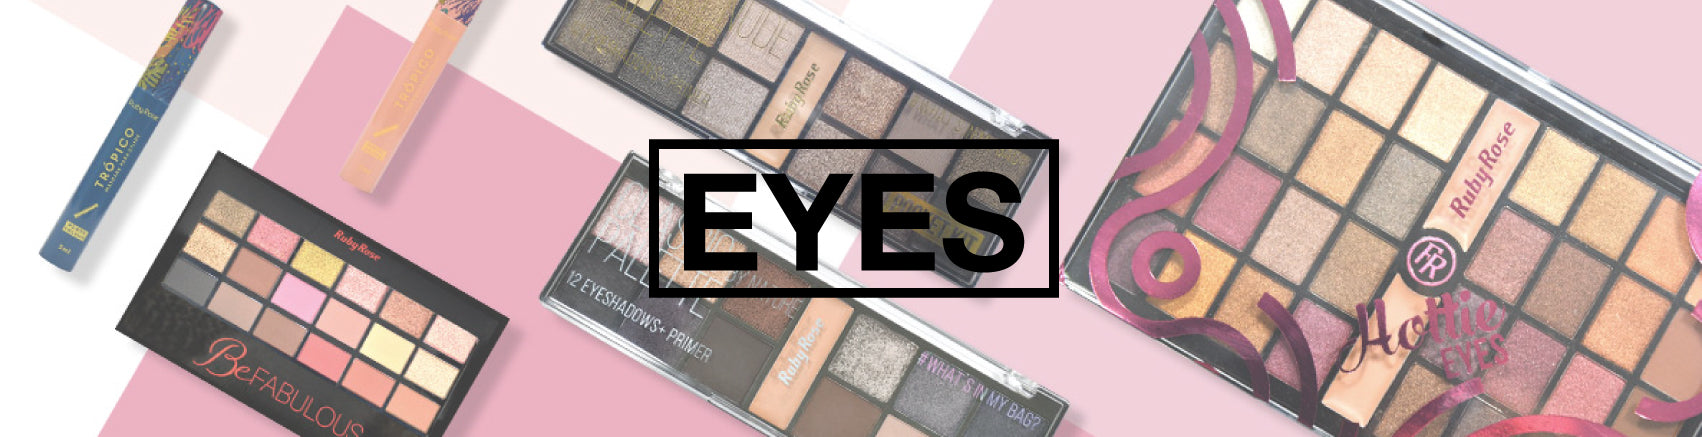 eyes ruby rose makeup lebanon delivery online